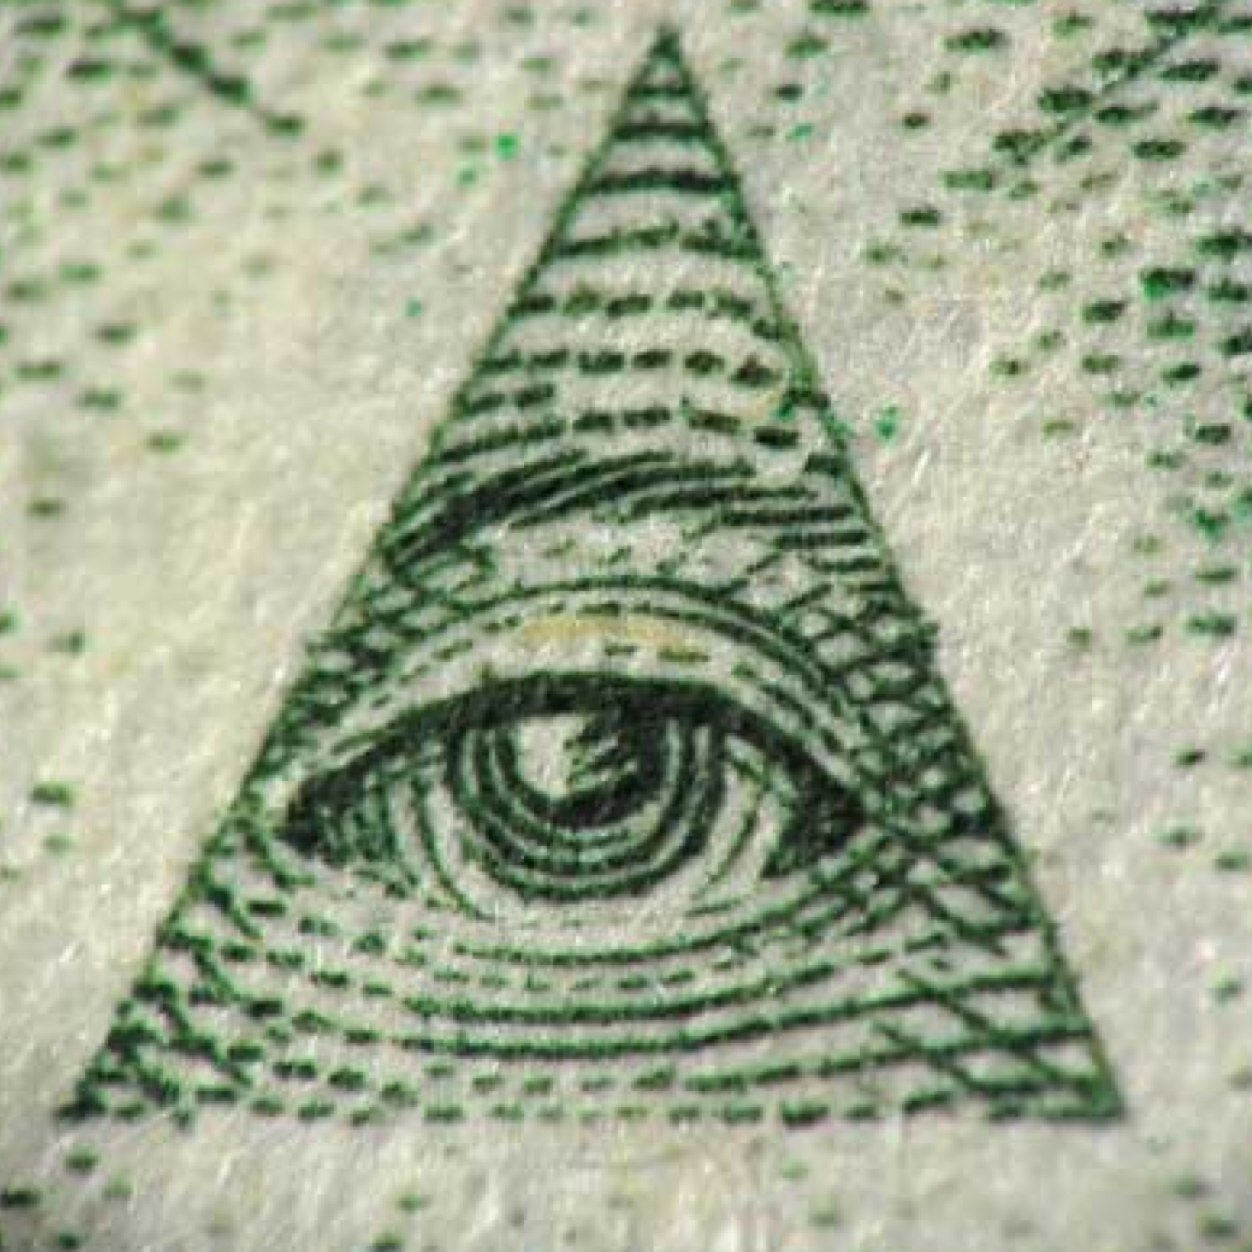 what is illuminati All-seeing eye on a pyramid the combination of the all-seeing eye floating in a capstone over a 13-step unfinished pyramid is the most popular illuminati symbols and by far the most recognizable symbol of the illuminati.